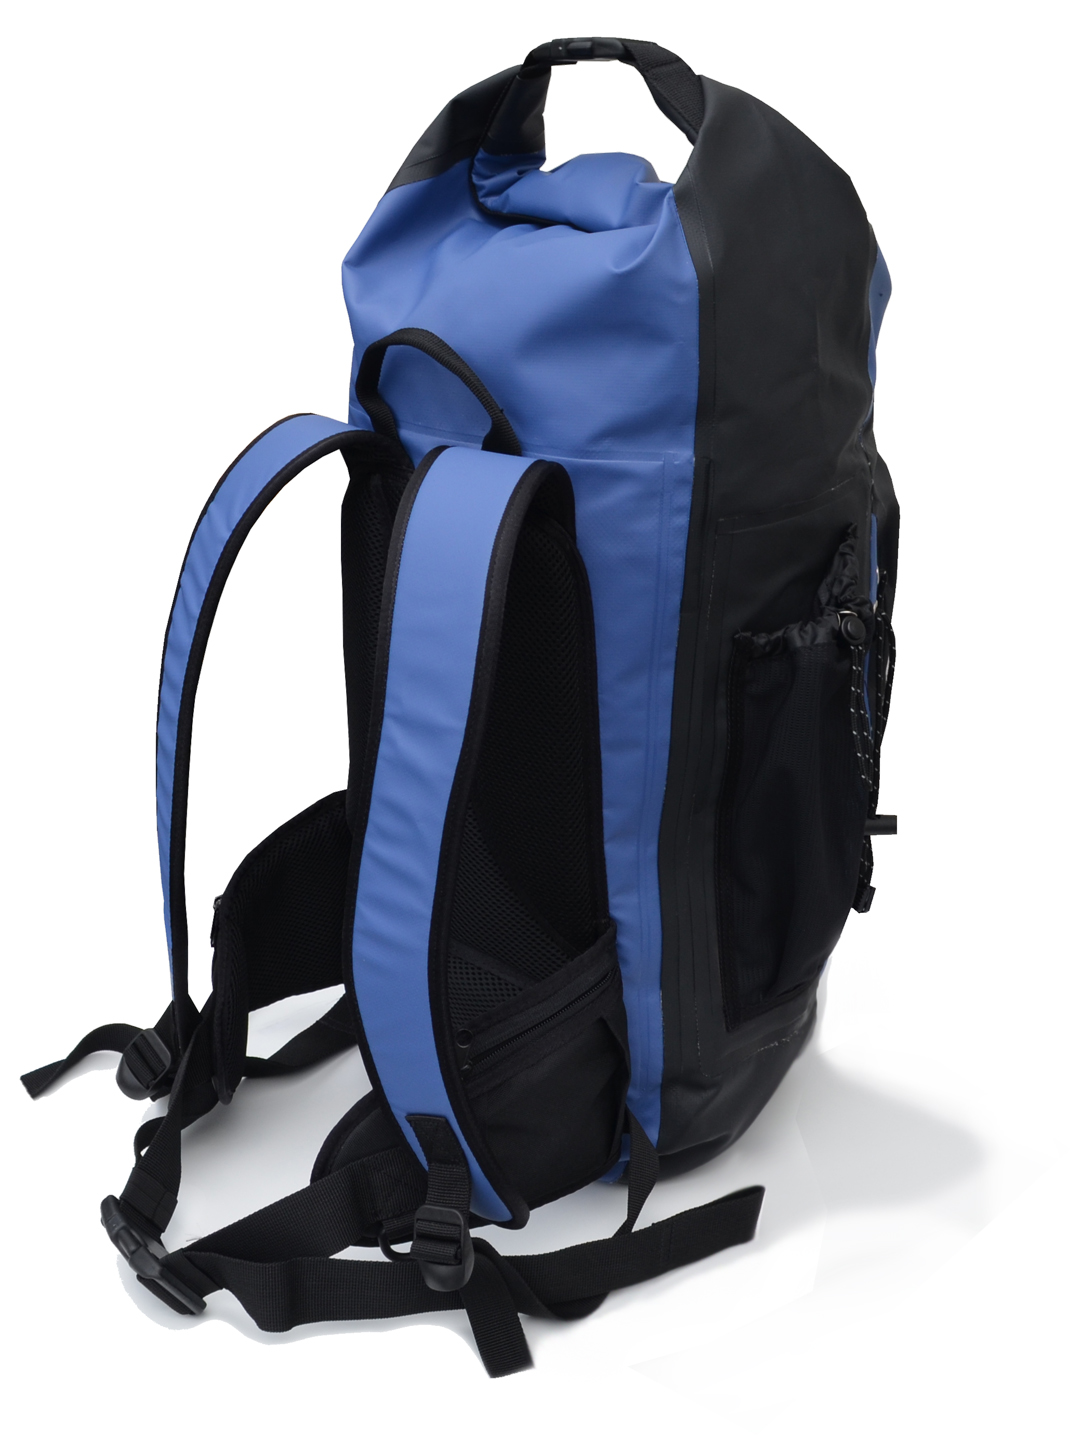 Best Waterproof Backpack For Hiking ze0NZ3Cf